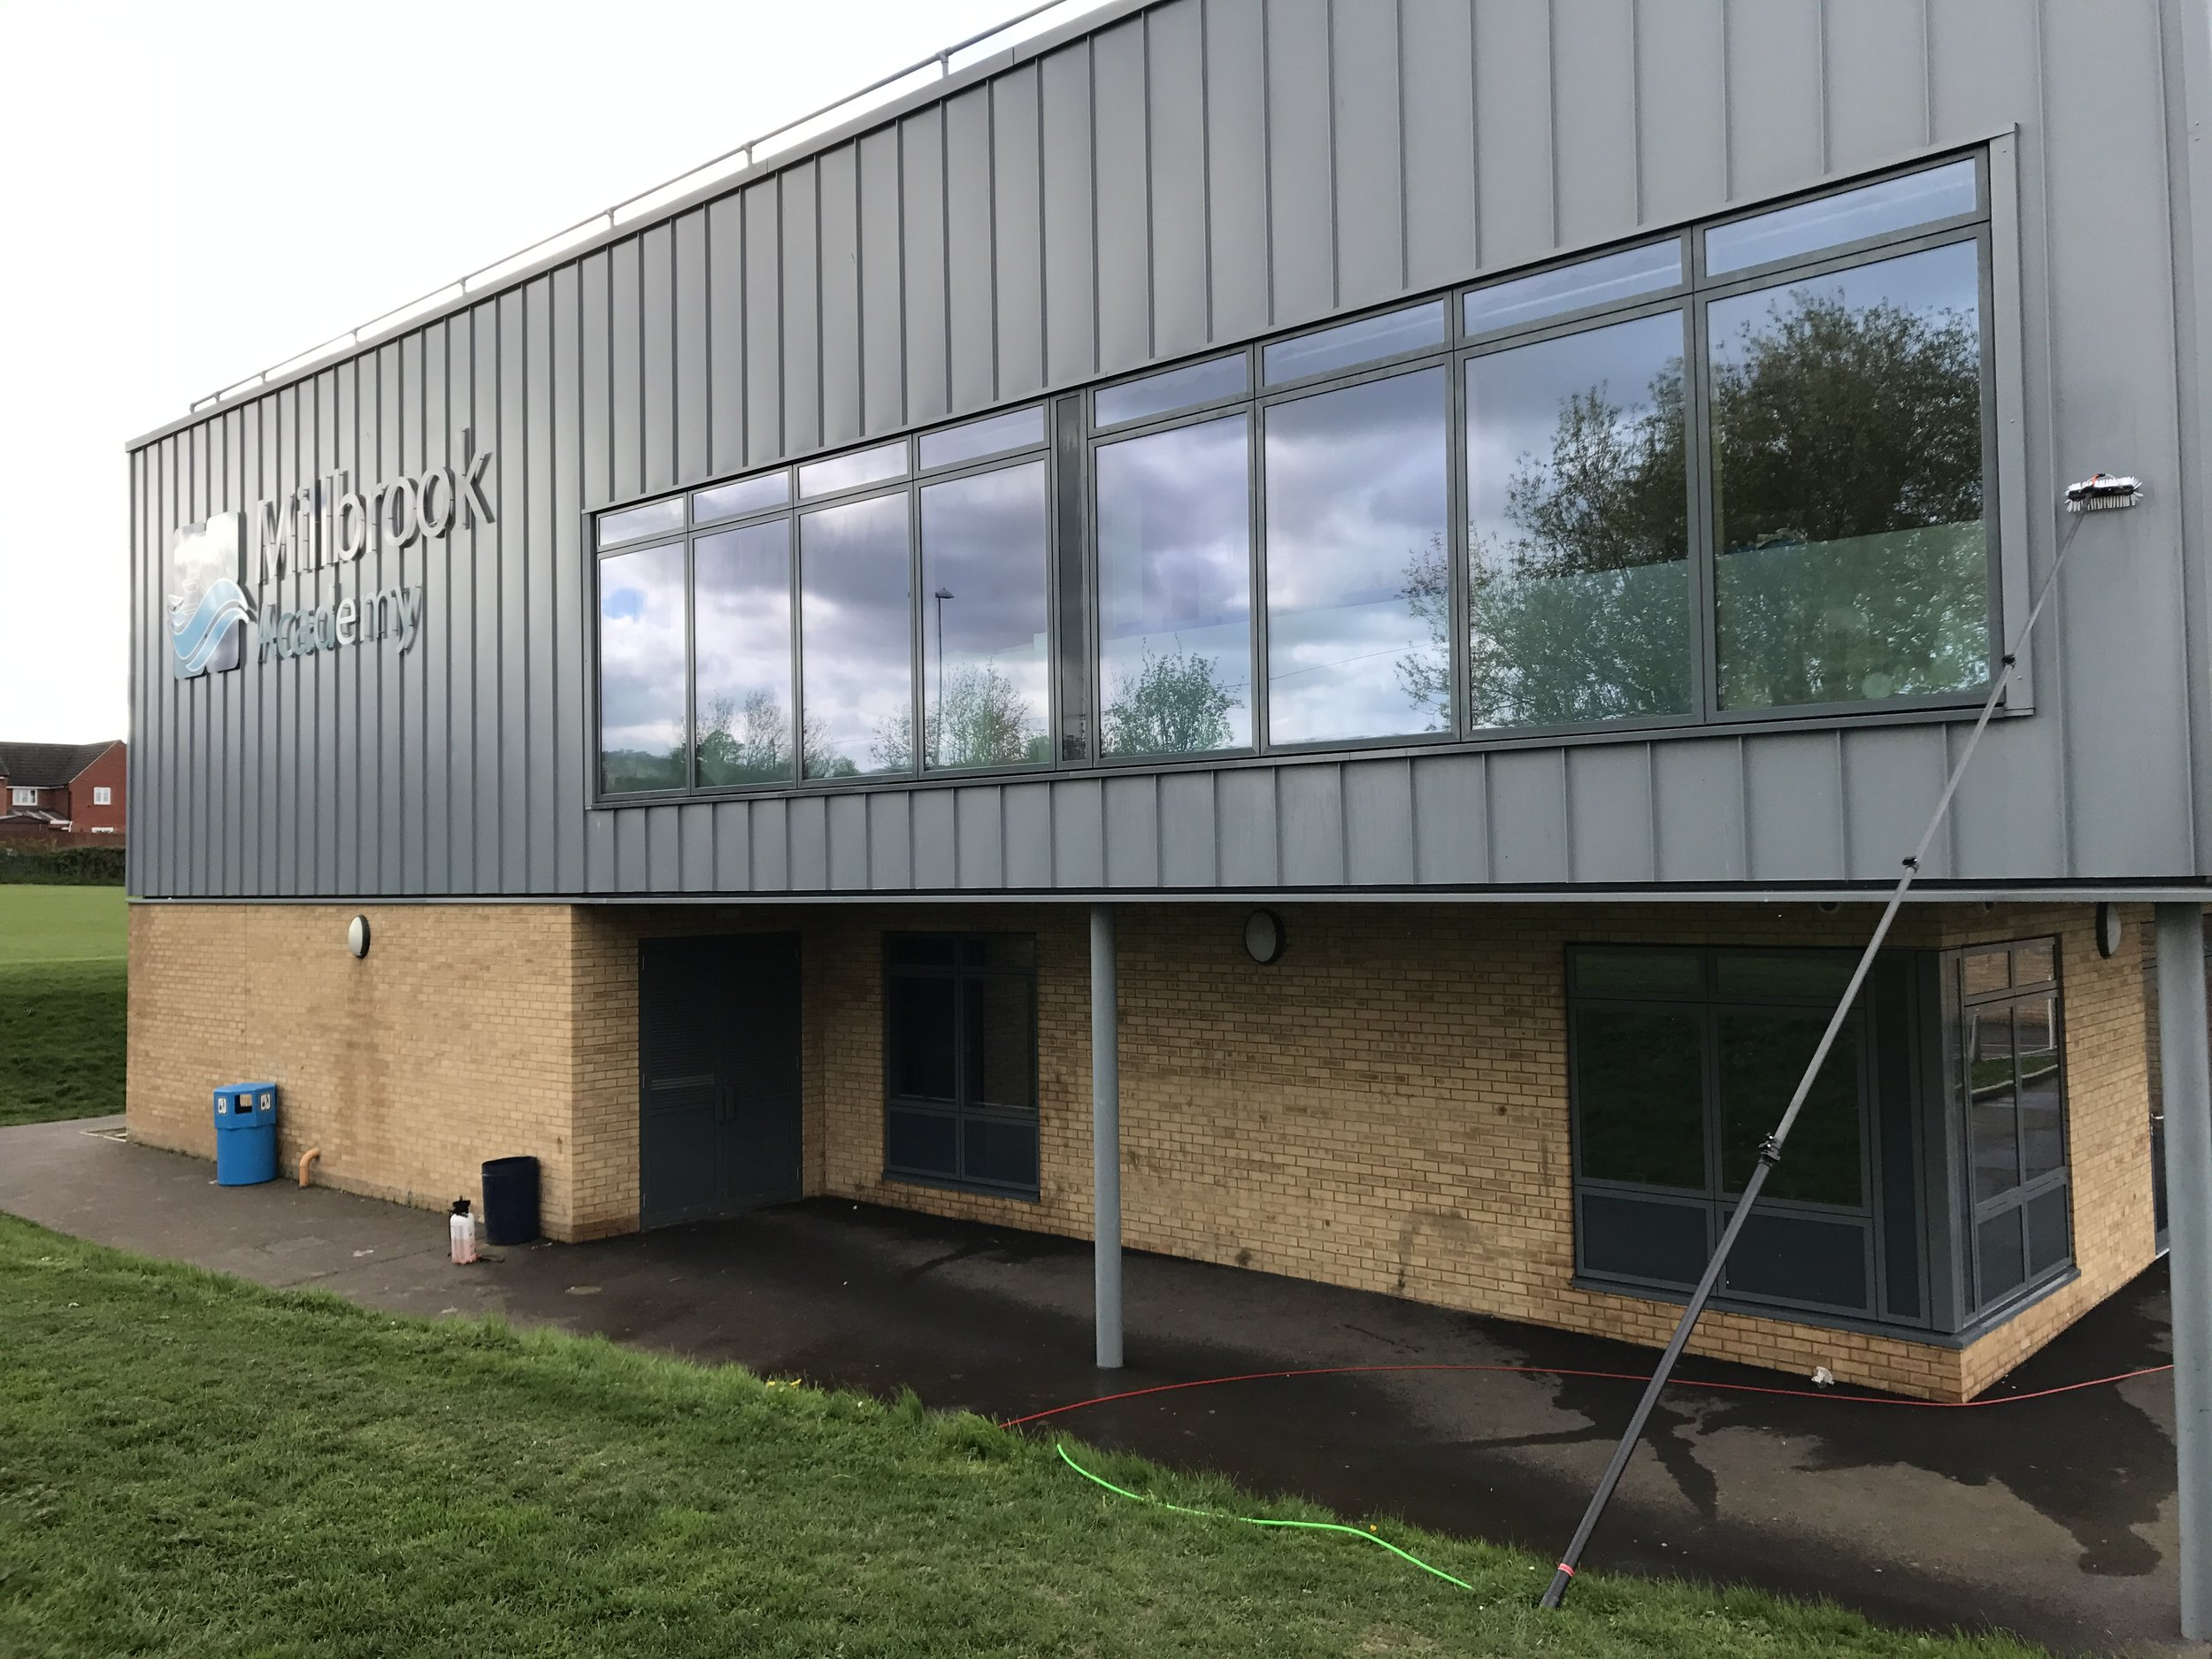 COMMERCIAL & RETAIL WINDOW CLEANING   REQUEST A QUOTATION